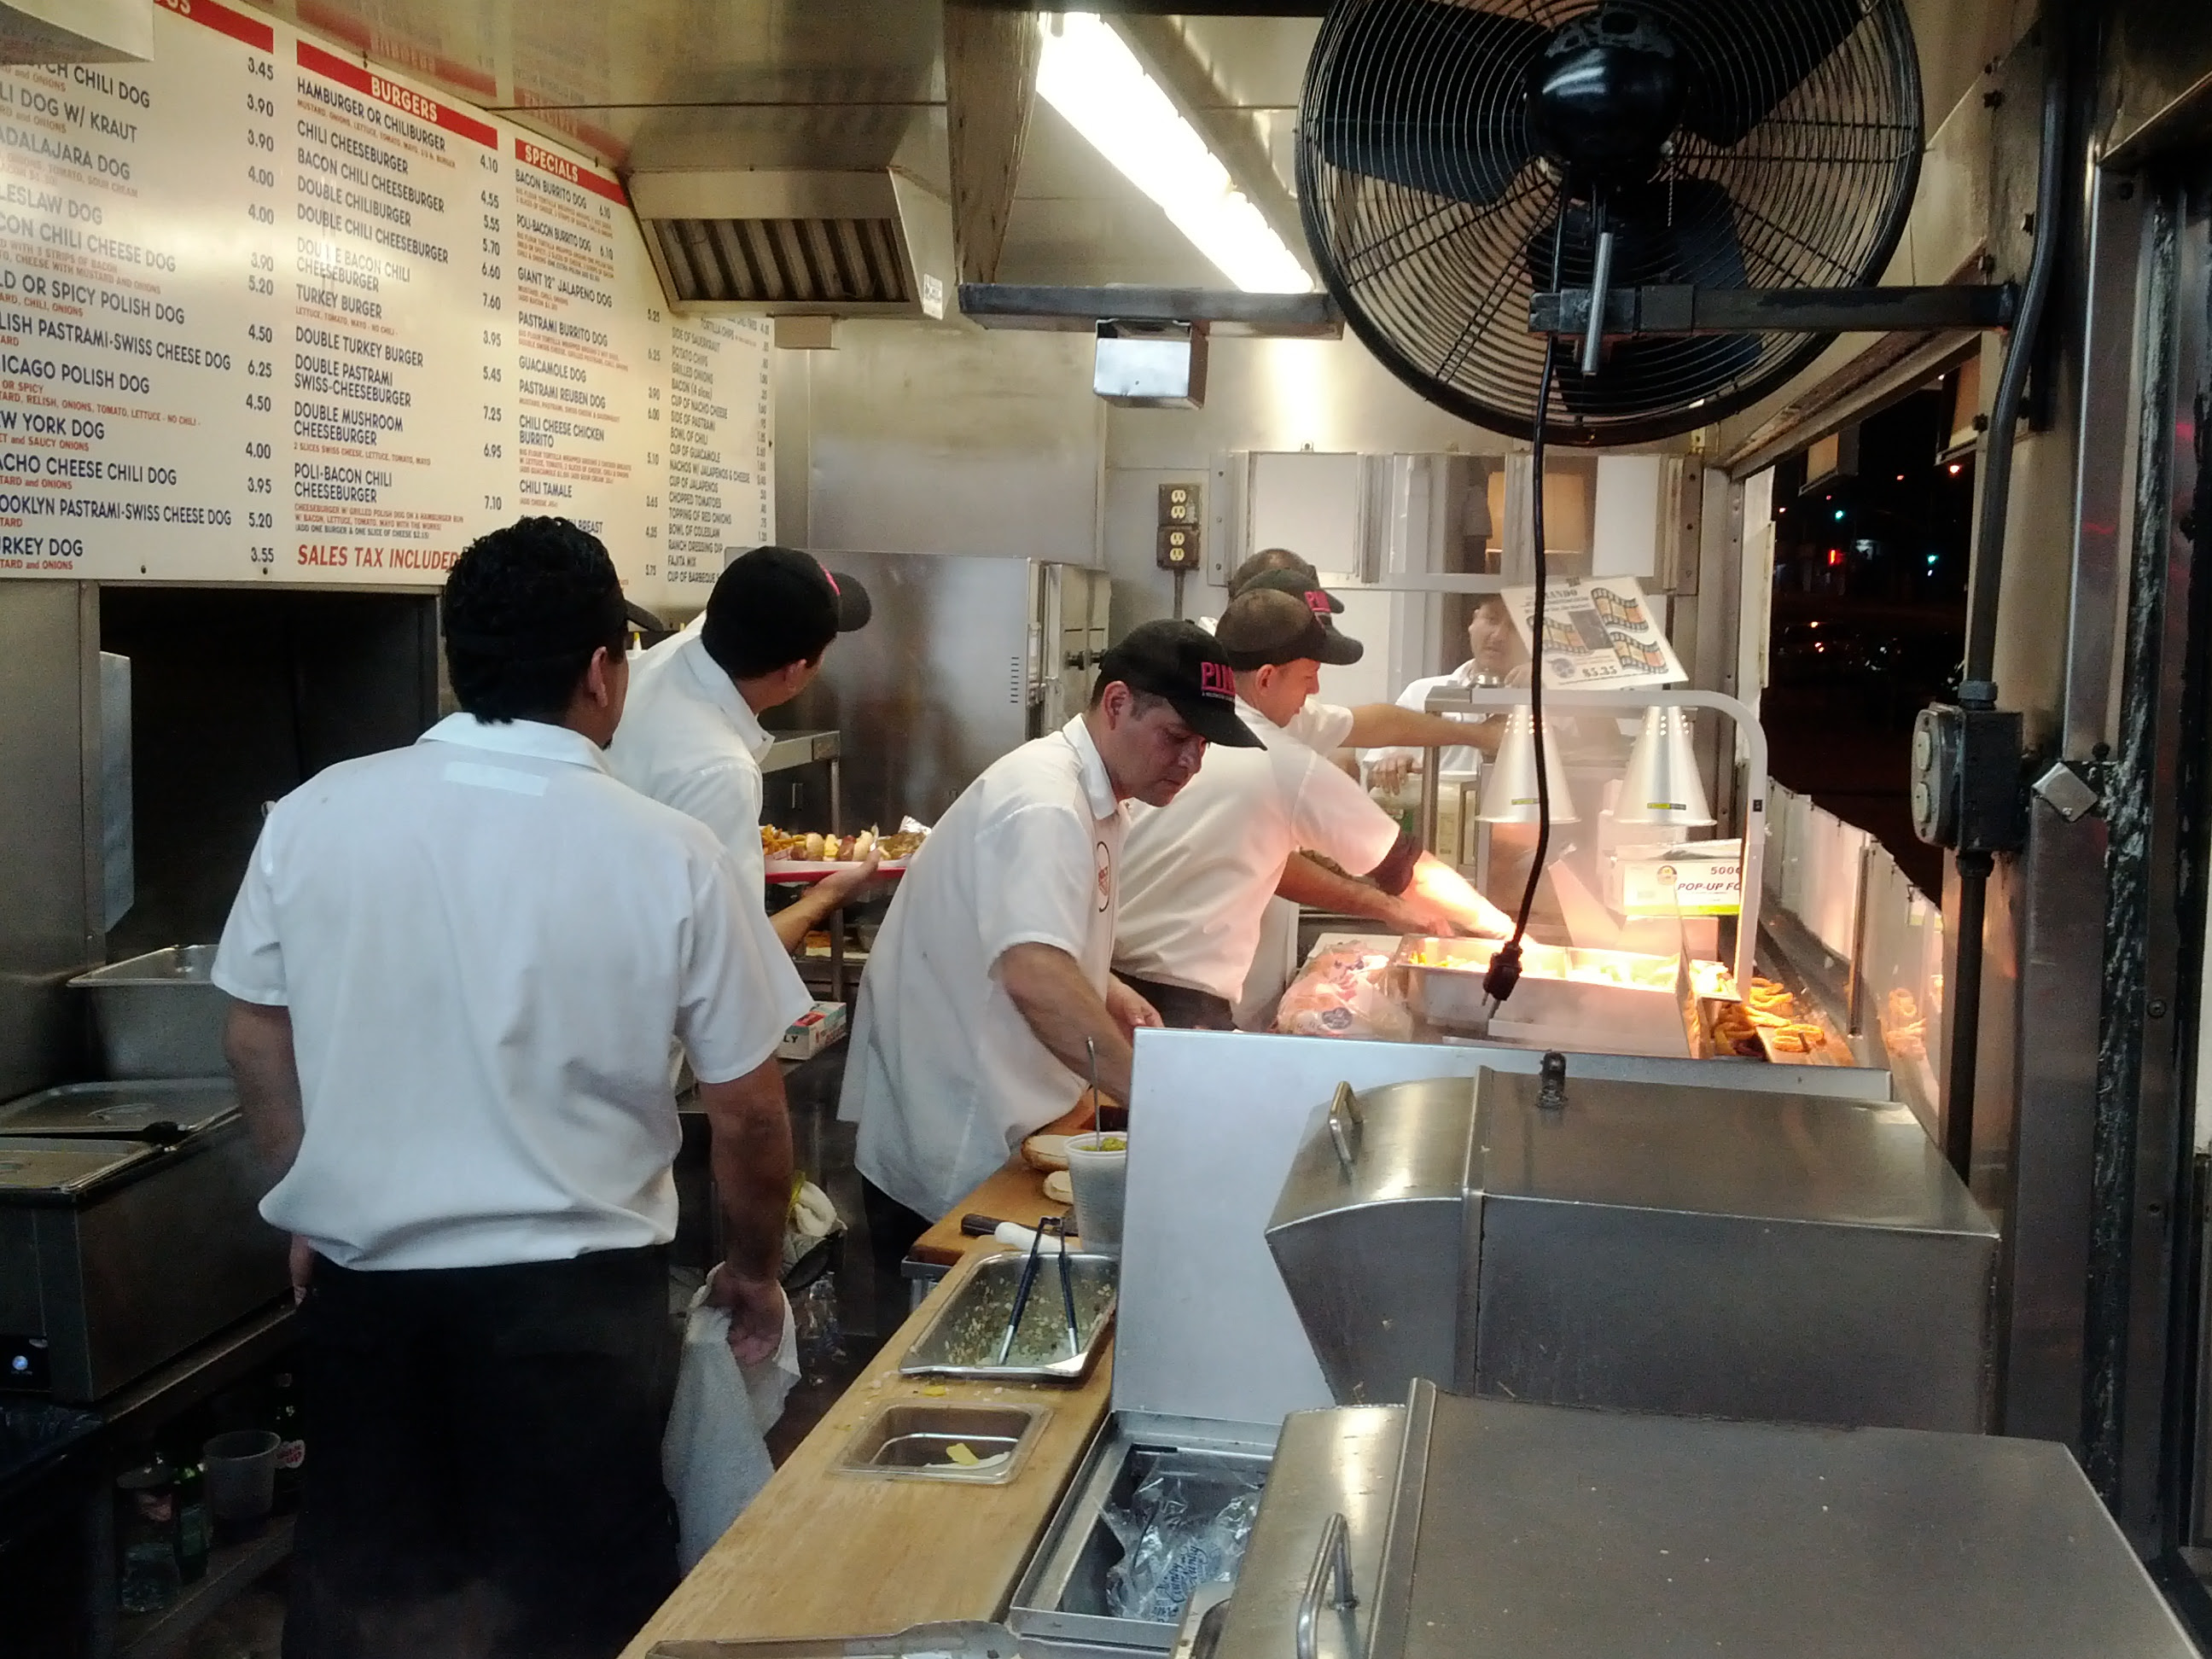 busy restaurant kitchen. Busy Restaurant Kitchen Hours After Dinner At N